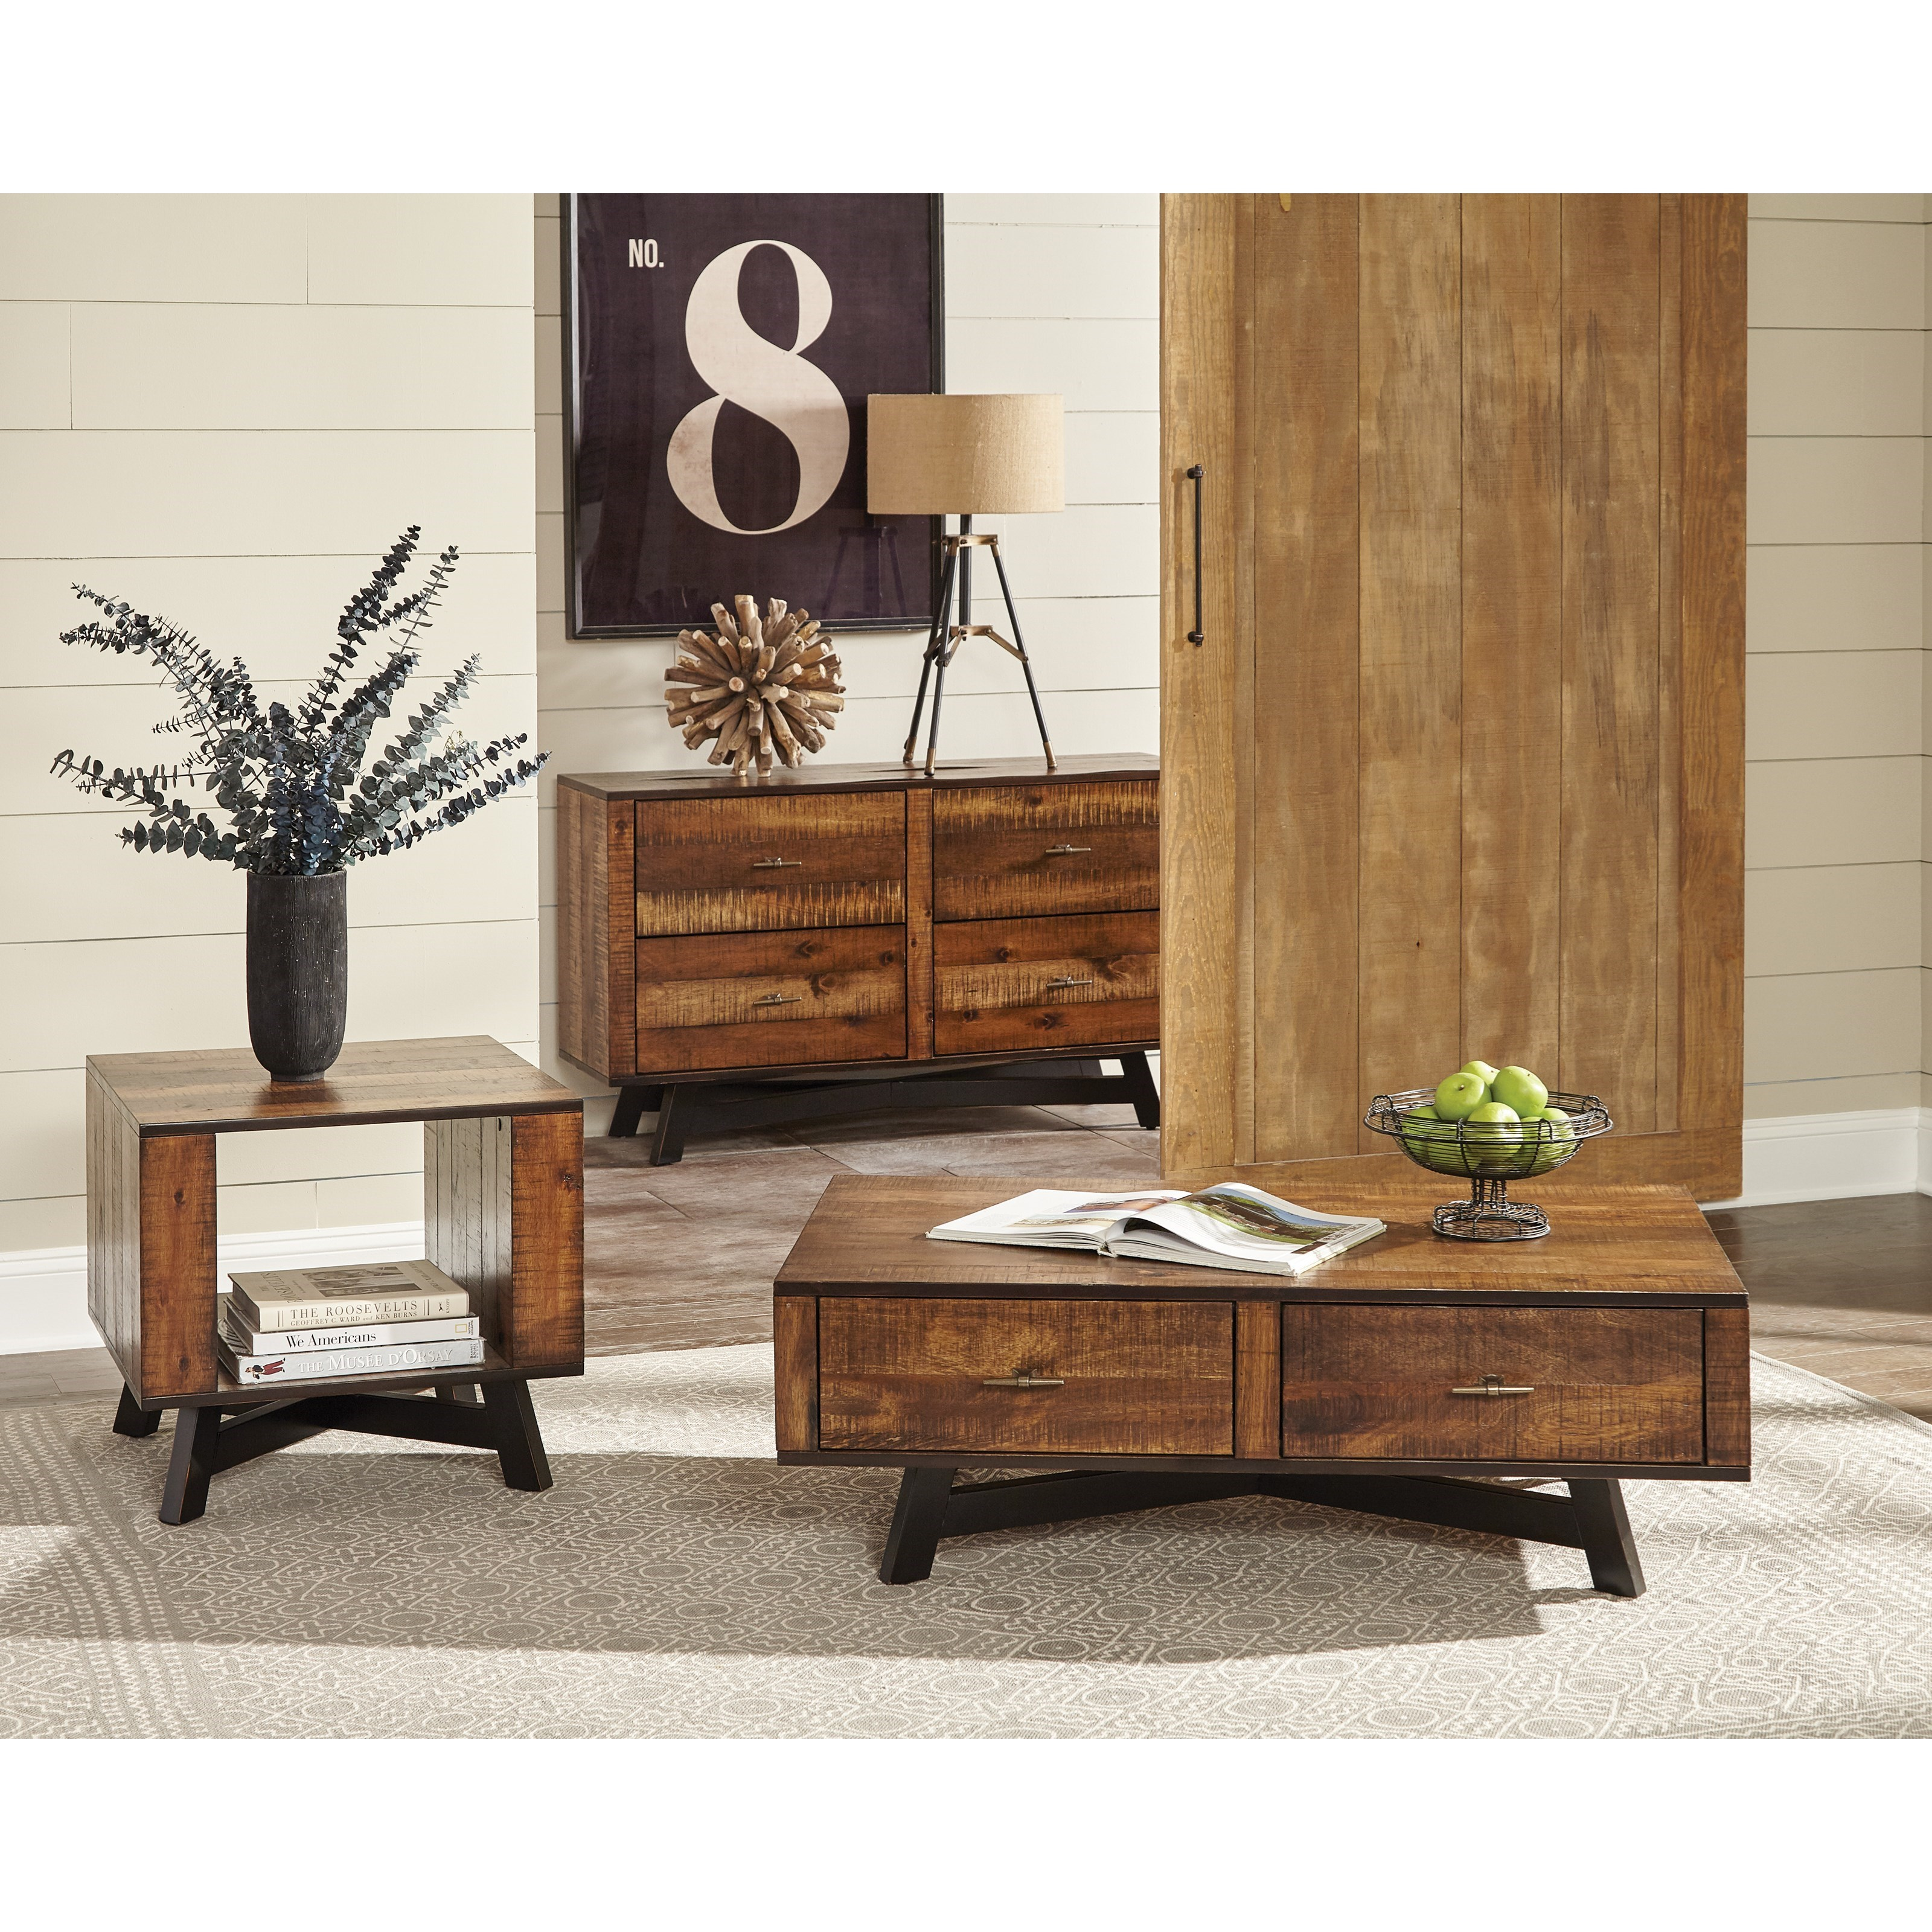 Scott Living Accents End Table - Item Number: 705637